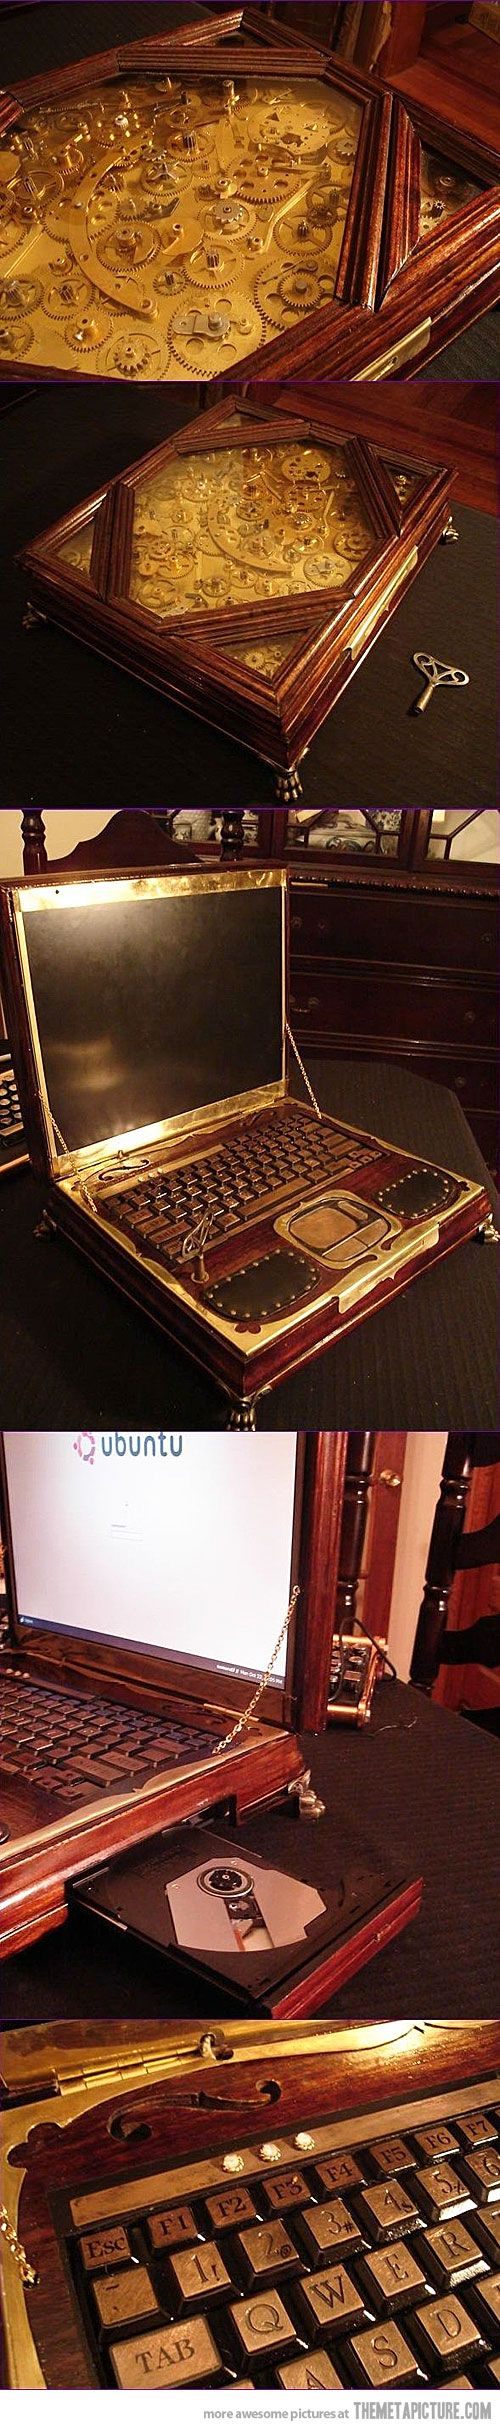 Steampunk Laptop So...AMAZING!!!!!!!!!!!!!!!!!!!!!!!!!